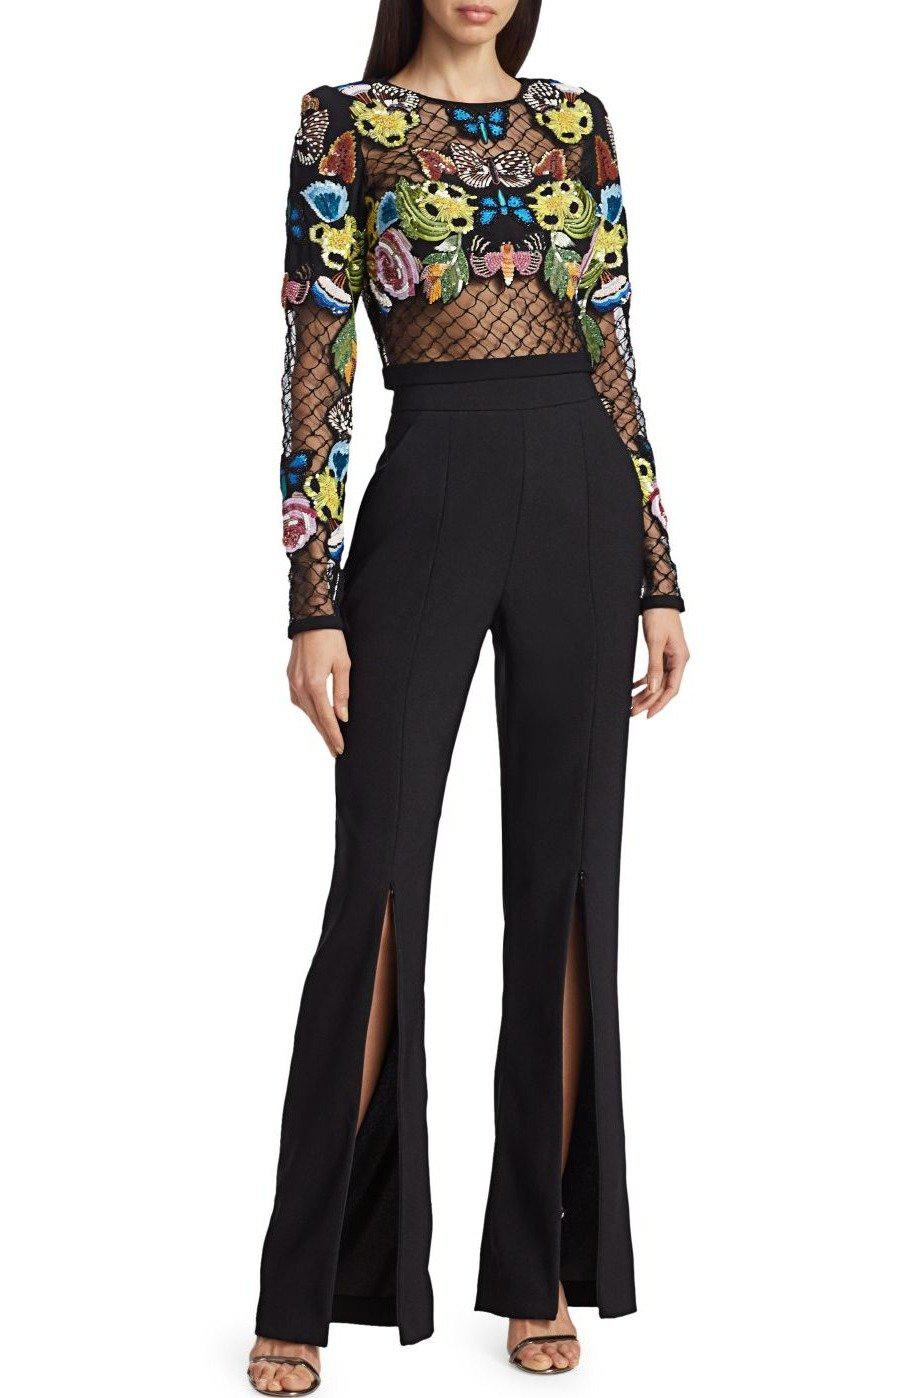 HAND EMBROIDERED MESH TOP